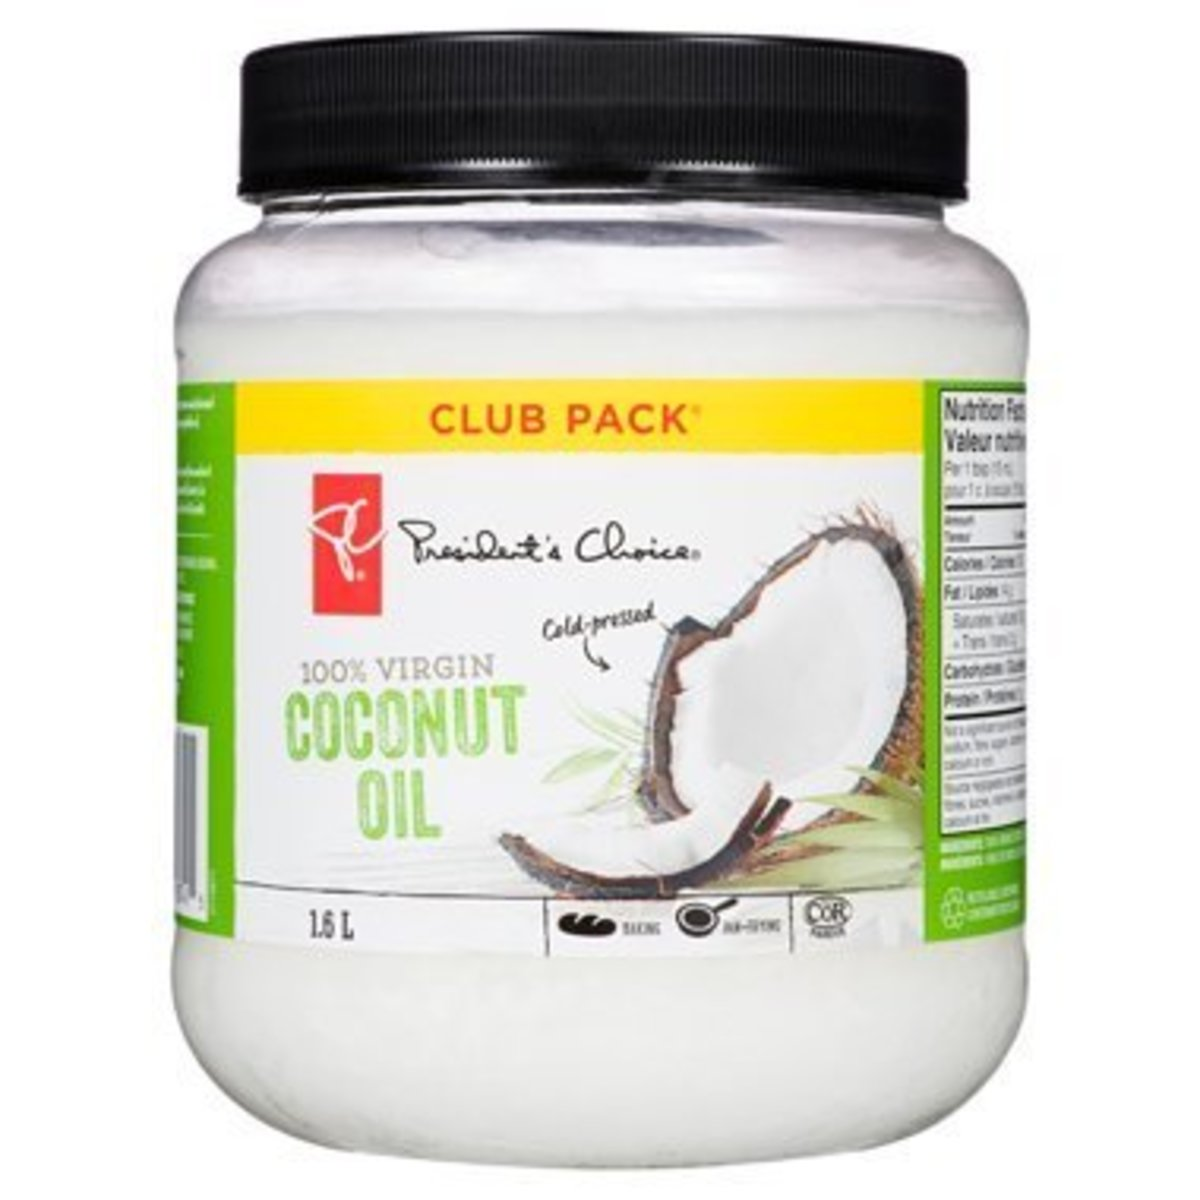 This is the coconut oil I use in my hair.